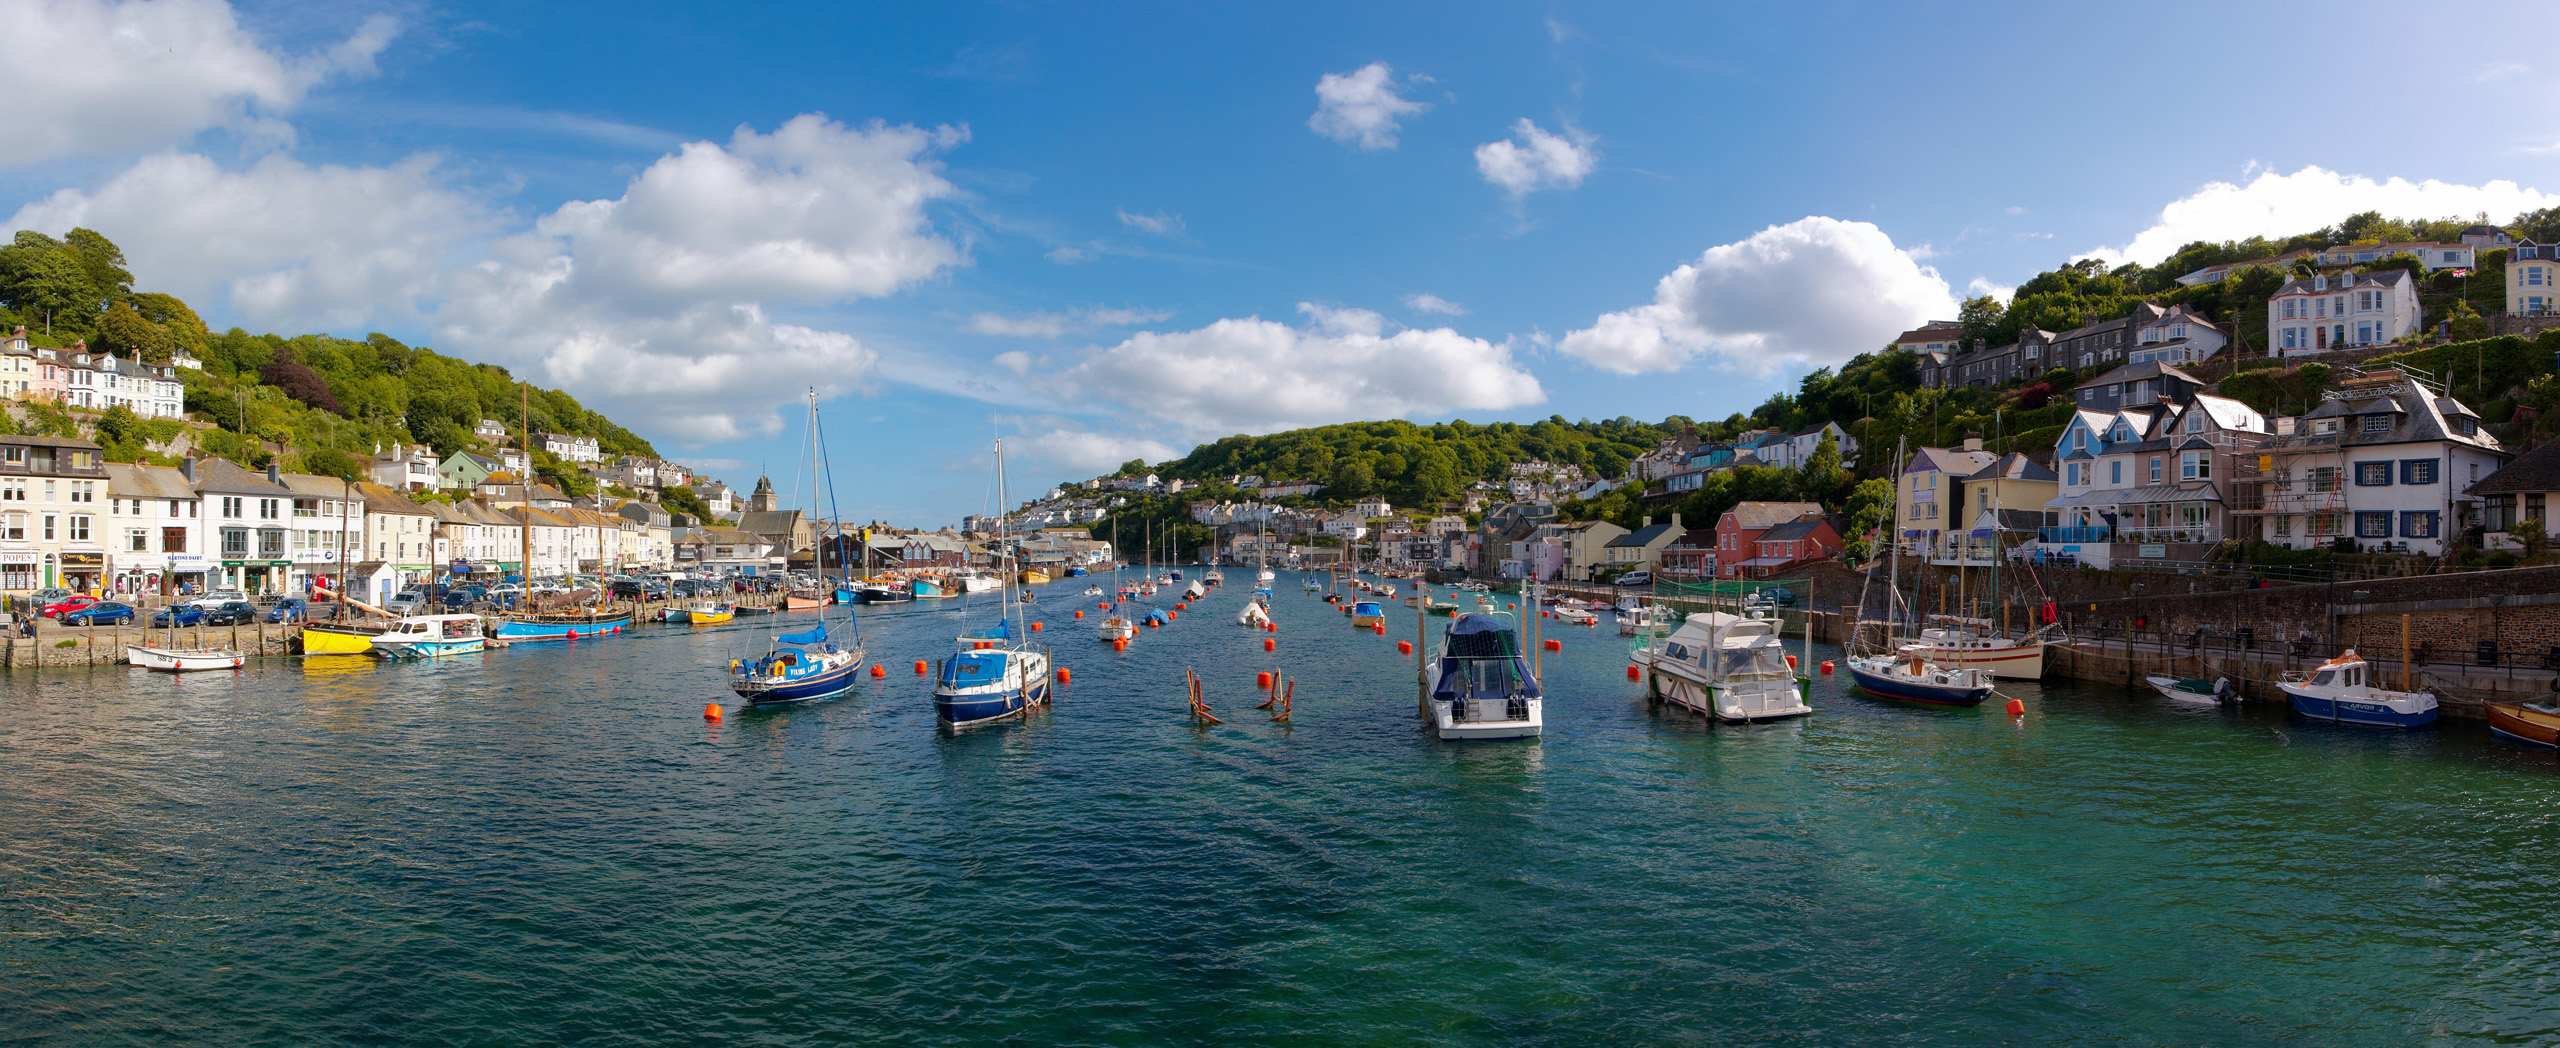 Looe river panorama from the bridge